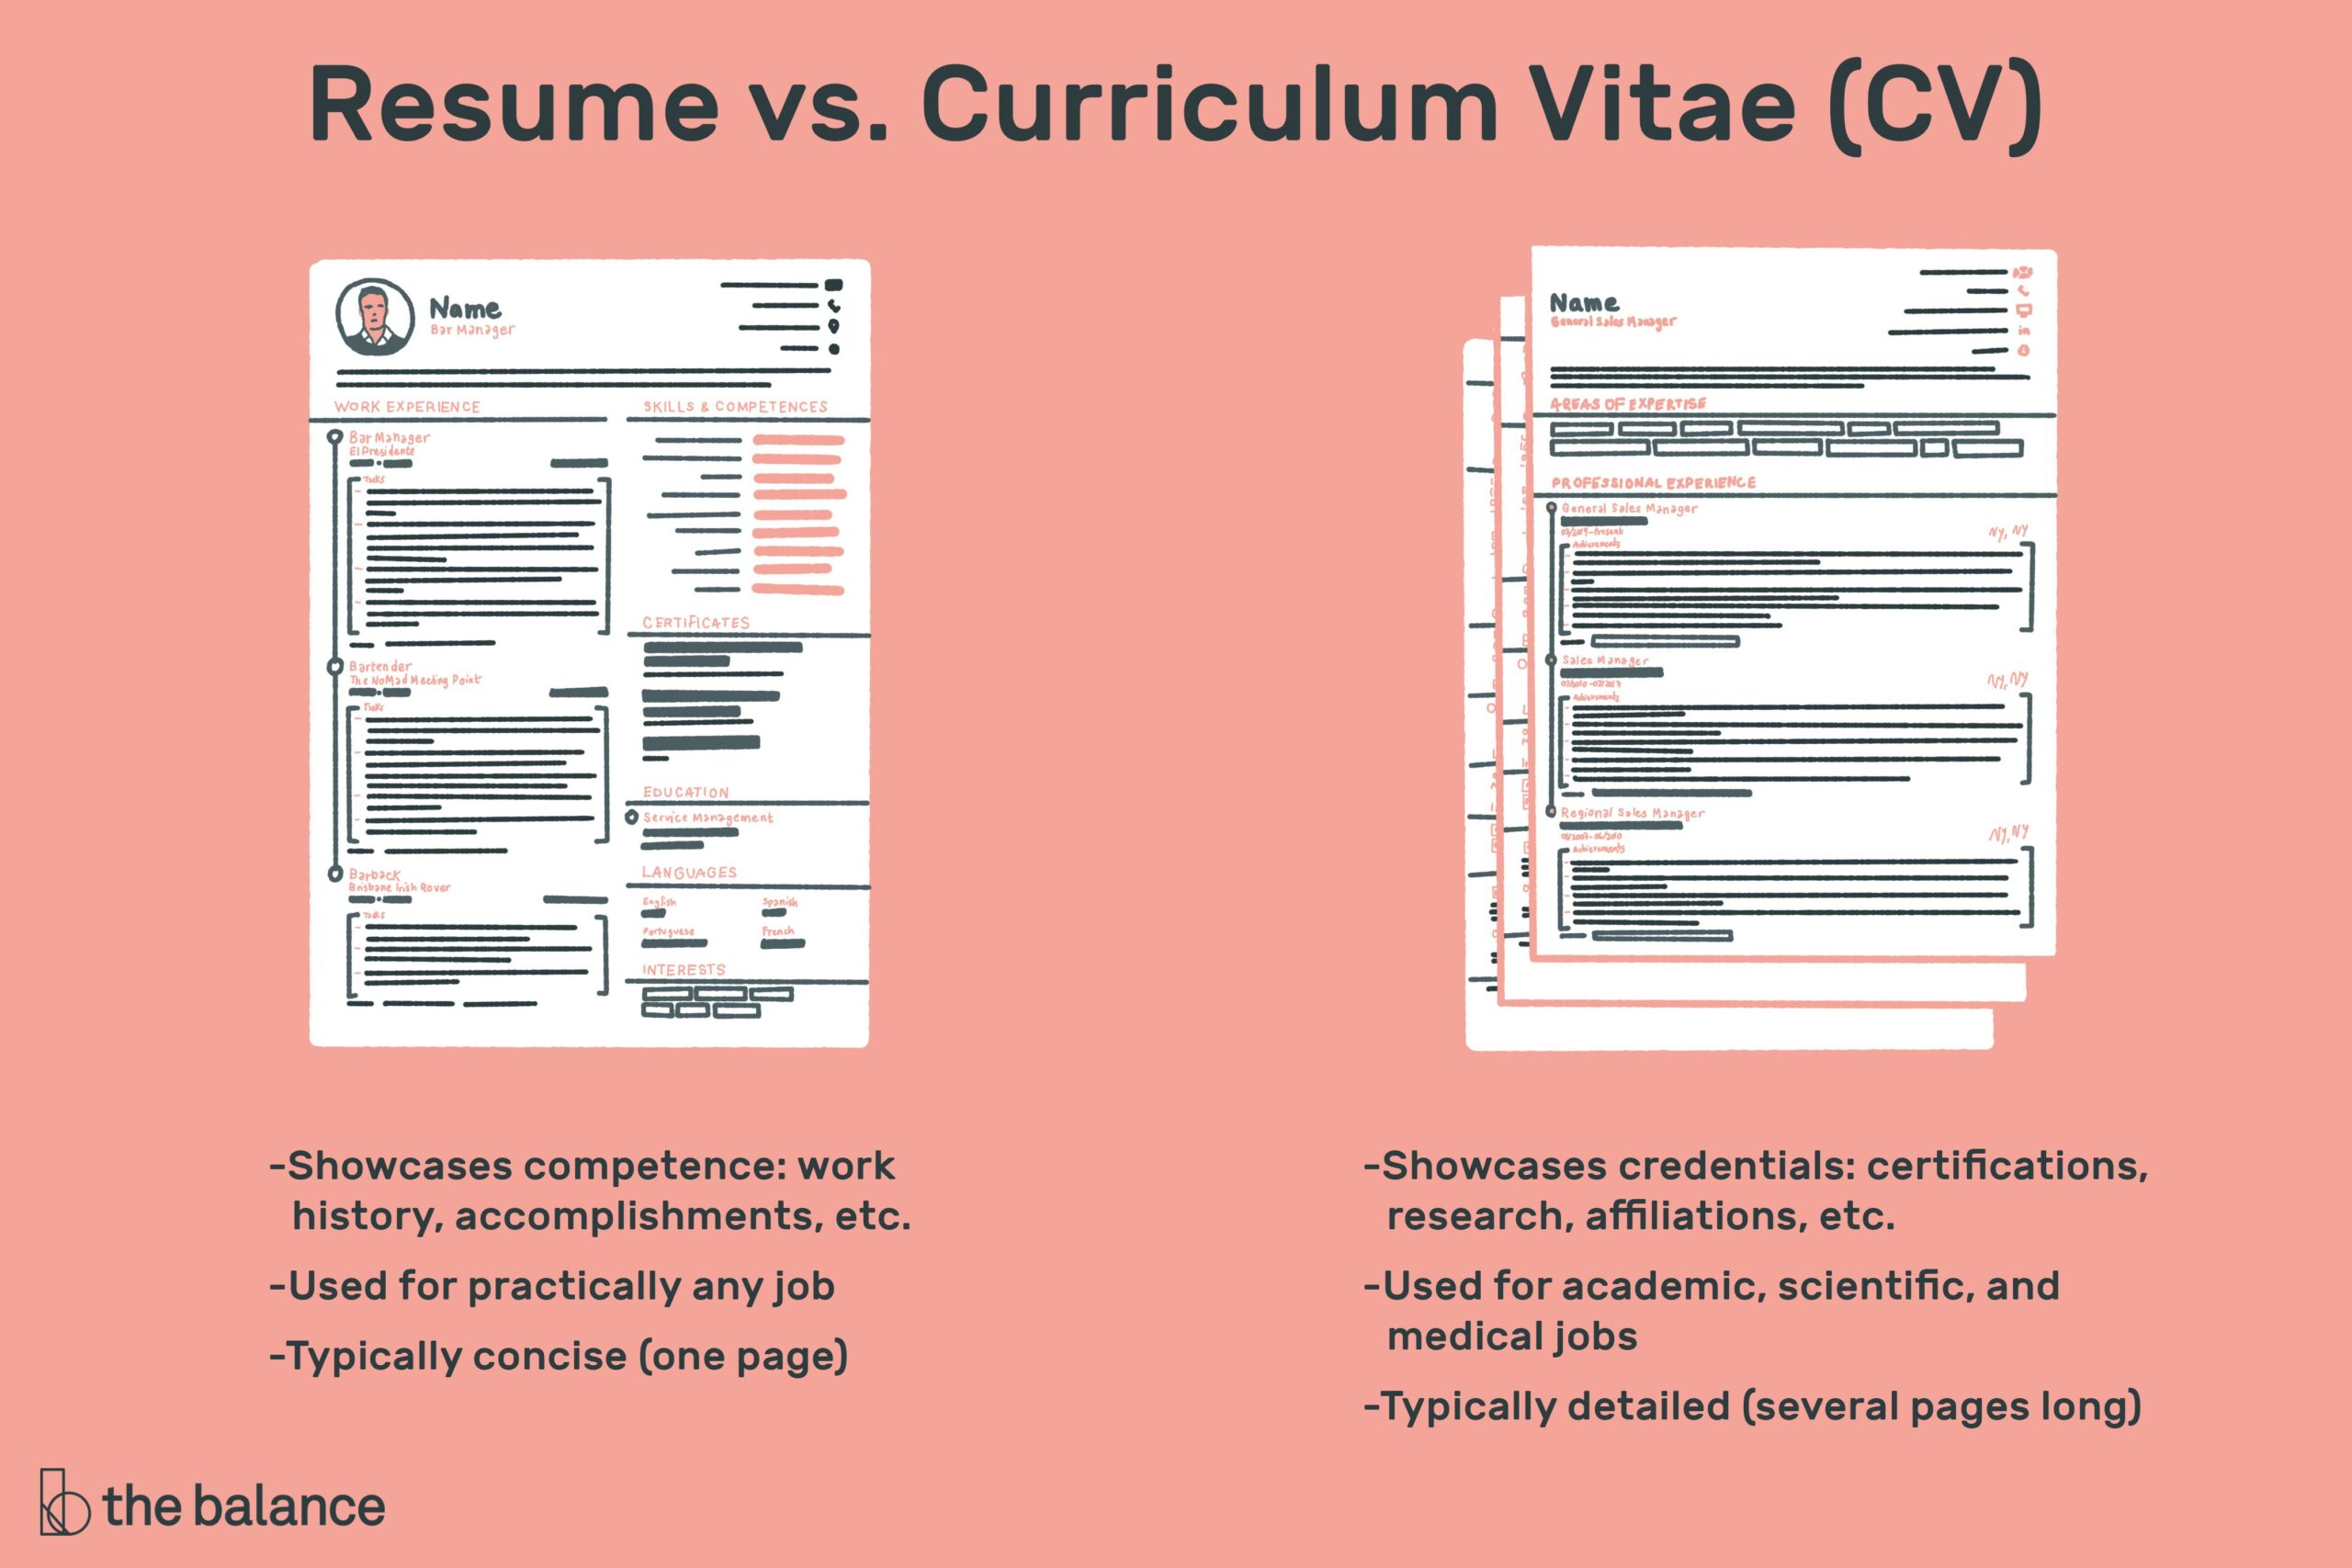 the difference between resume and curriculum vitae vs cv final sally beauty roustabout Resume Curriculum Vitae Vs Resume